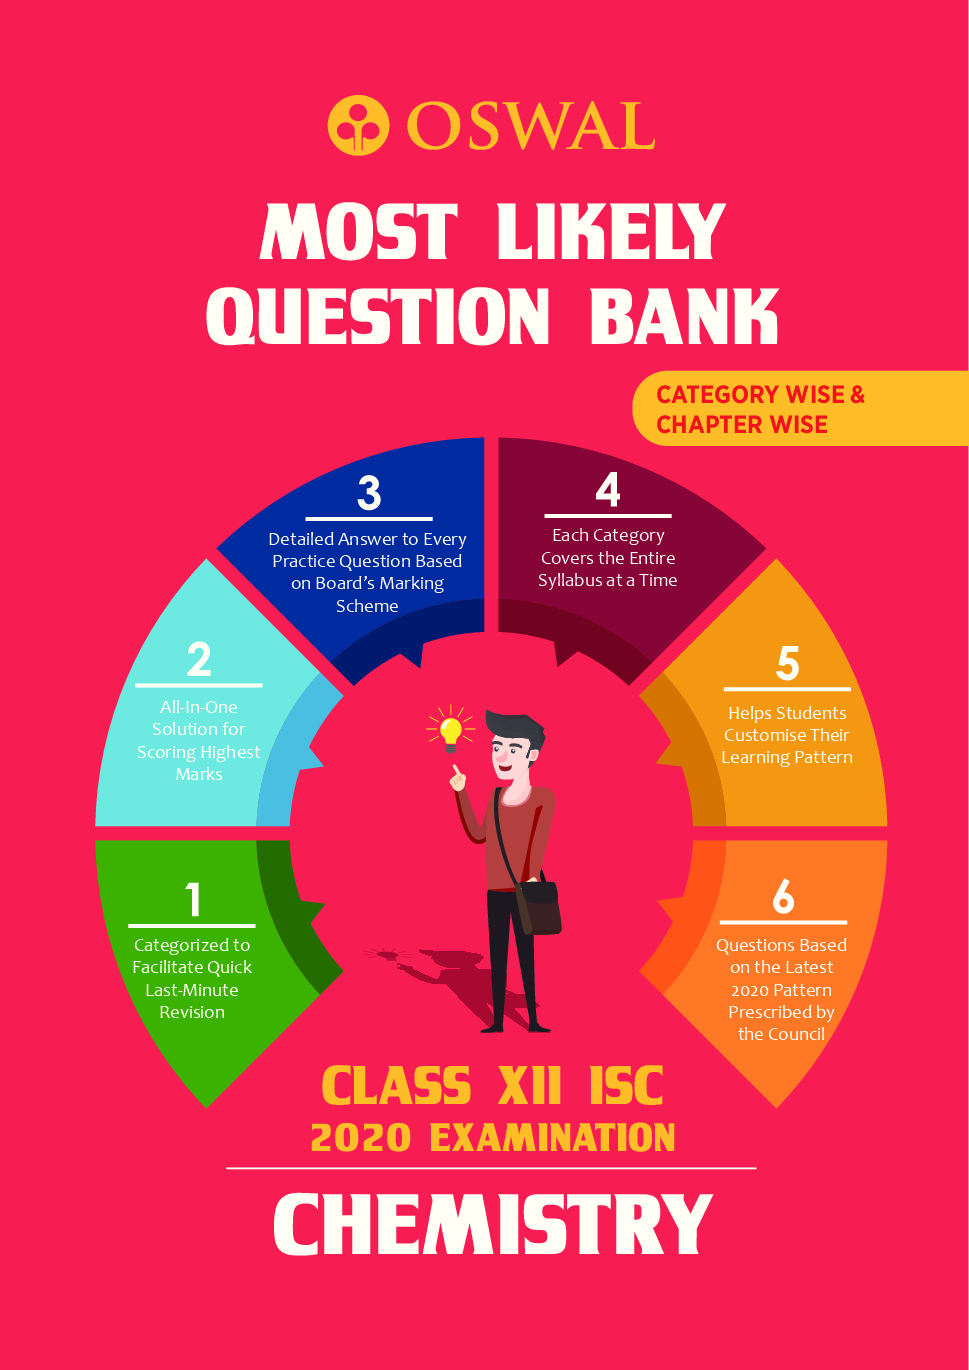 Oswal ISC Most Likely Question Bank Category & Chapterwise For Class XII Chemistry (For 2020 Exam) - Page 1